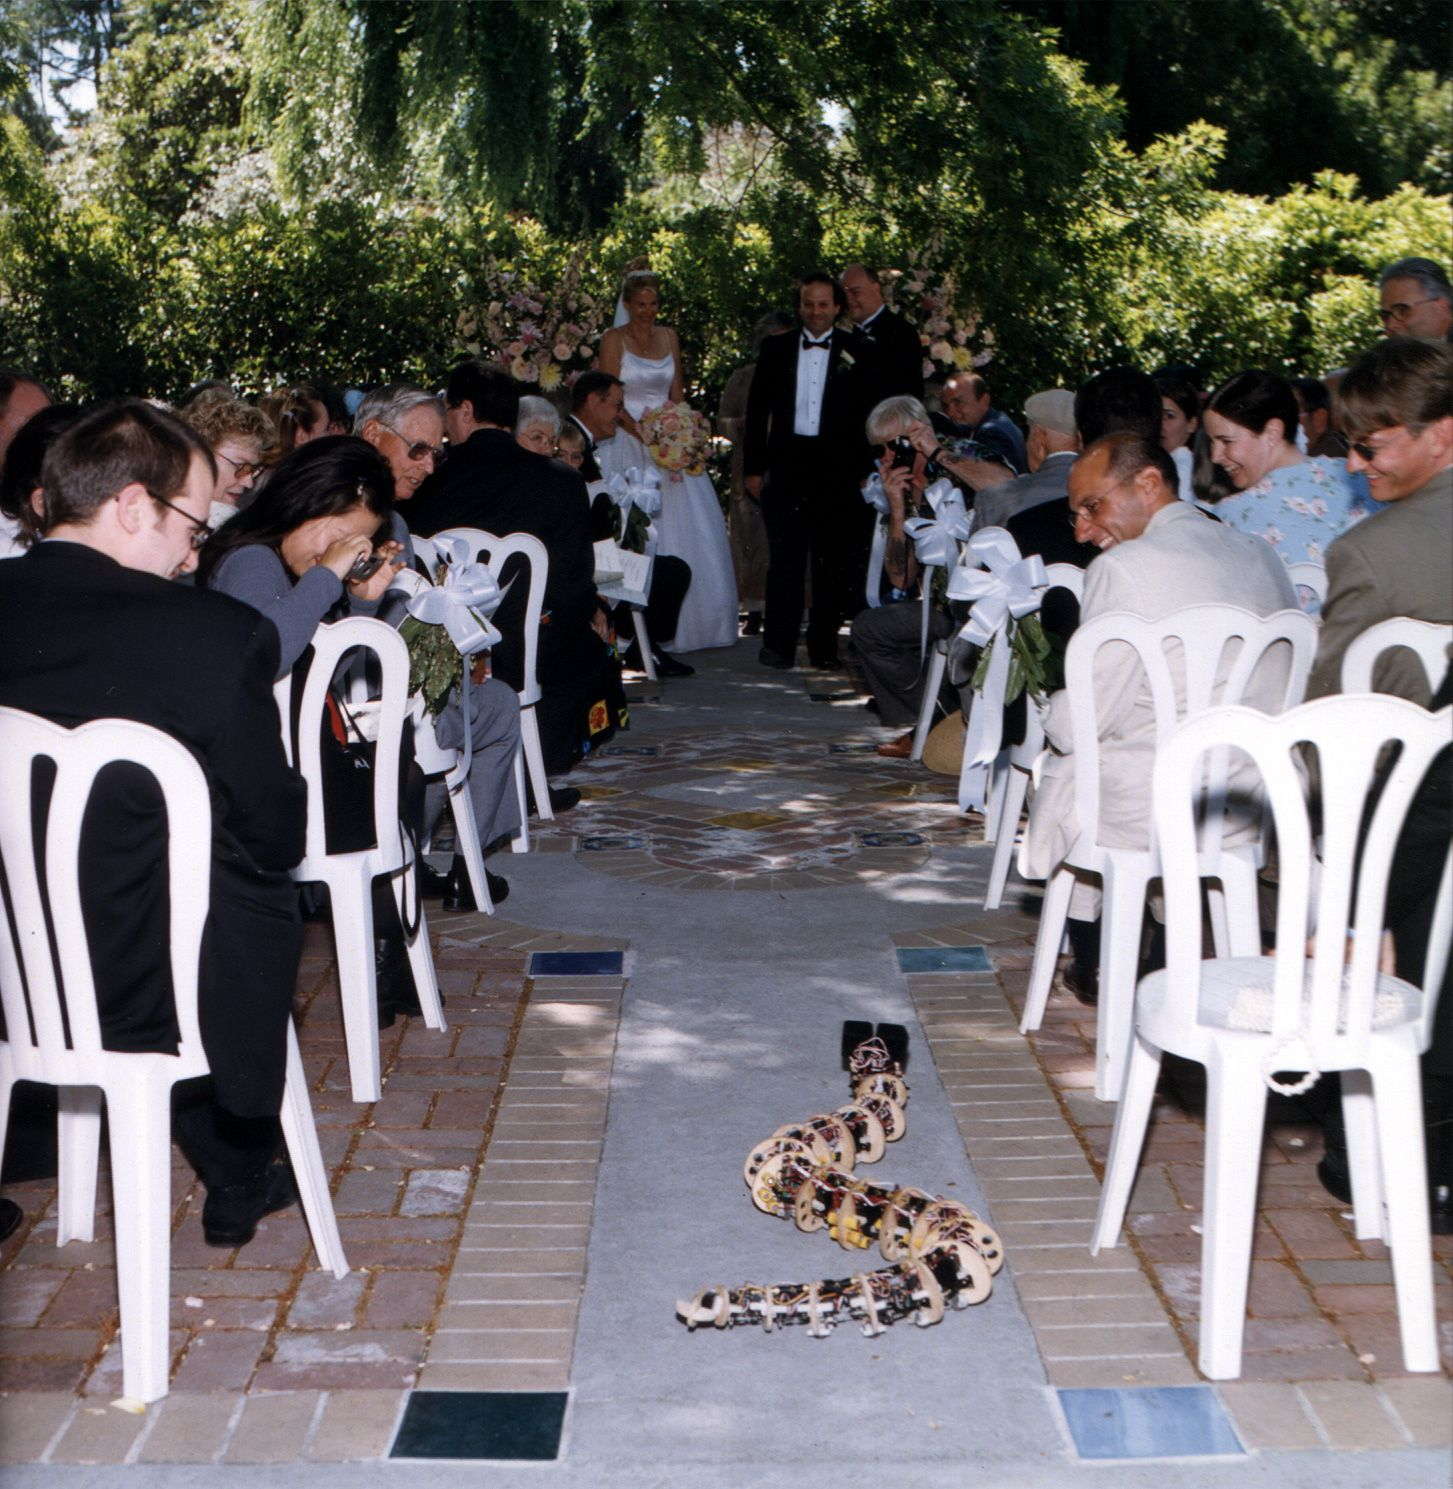 you know it is a nerd wedding when the ring bearer is a robot snake fun pinterest thats hilarious cats and wedding - Wedding Ring Bearer